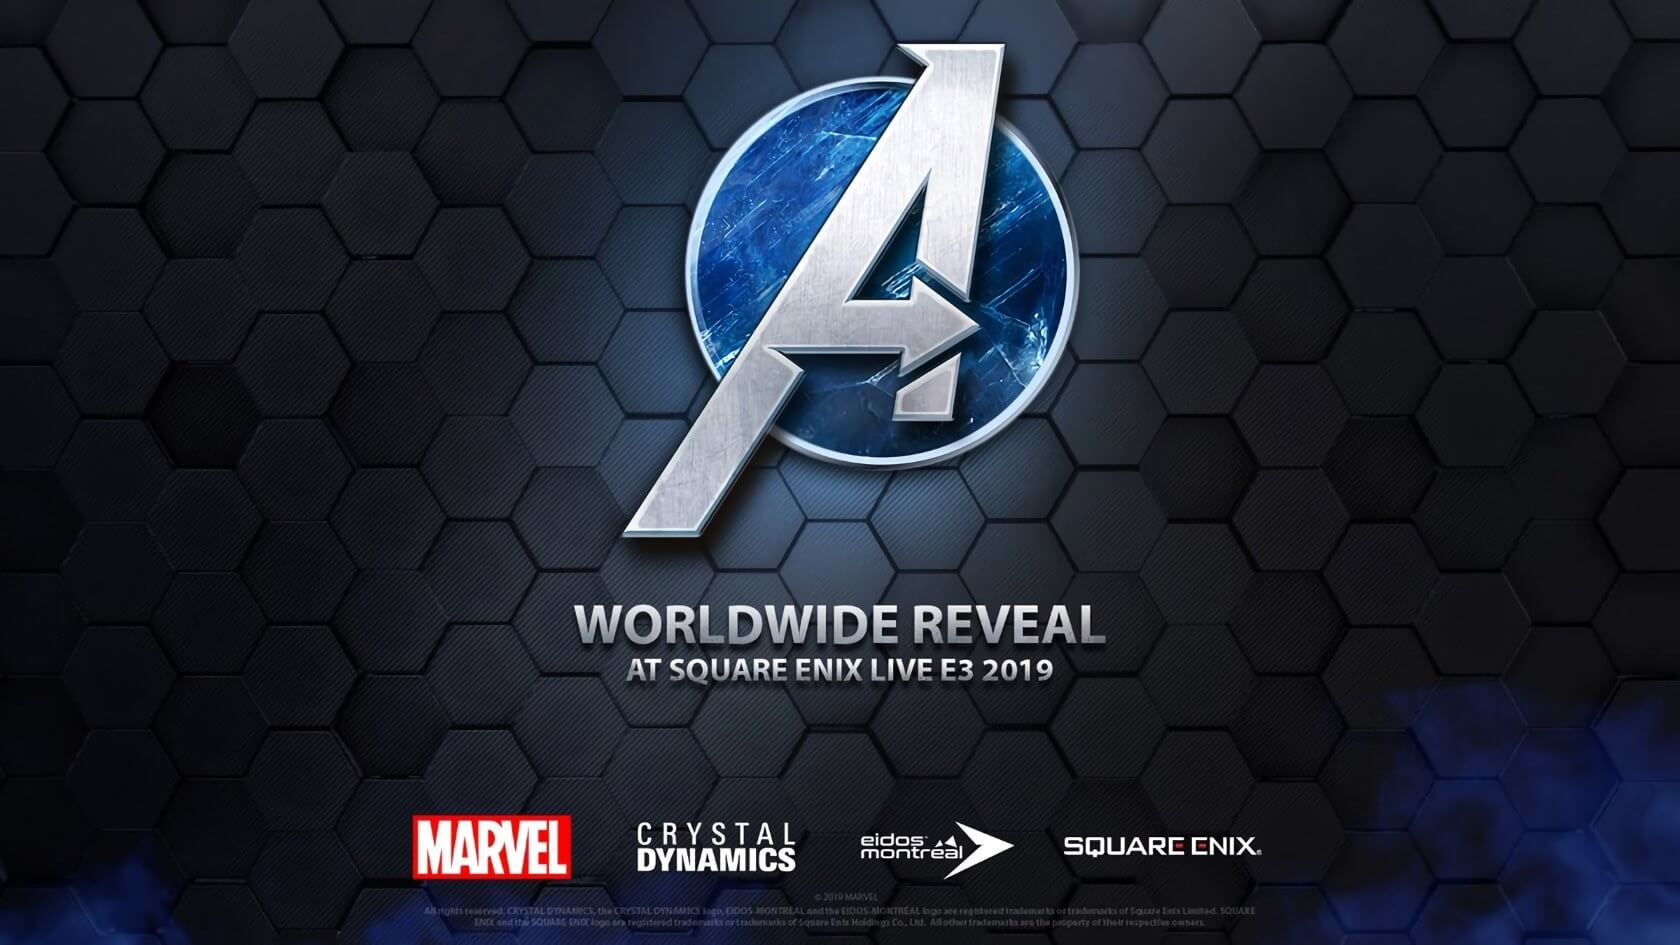 Square Enix's AVENGERS Unveiling at E3